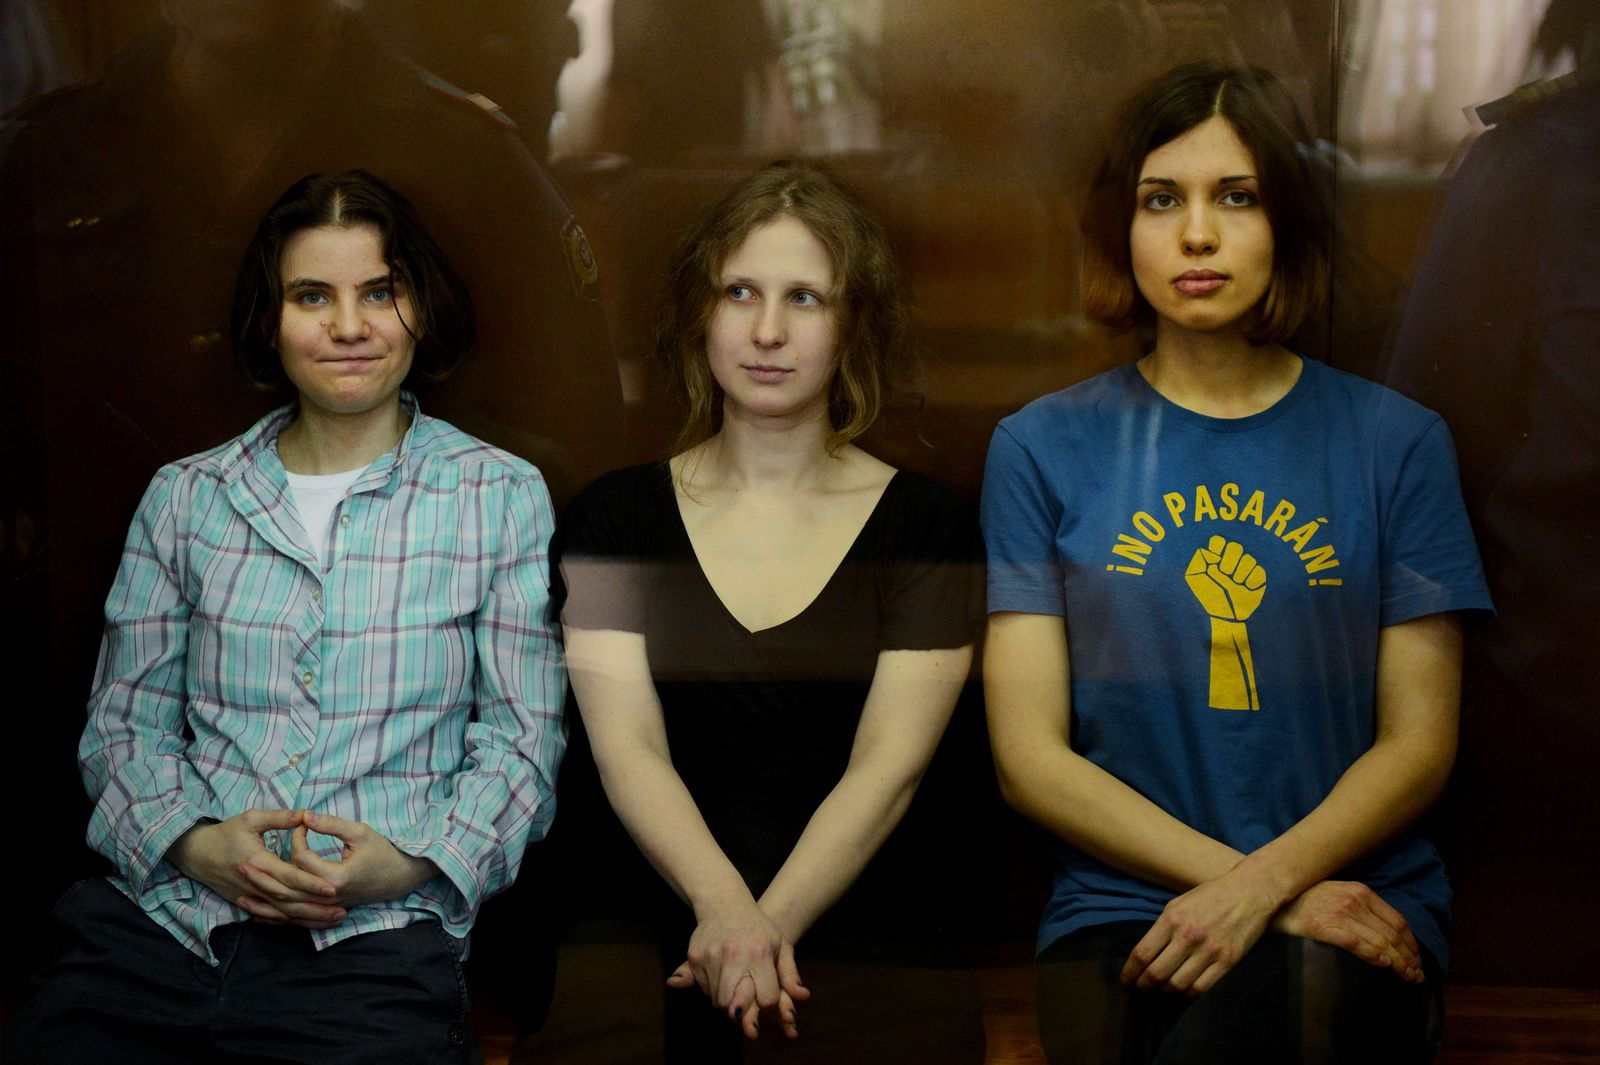 Russland / Pussy Riot Band